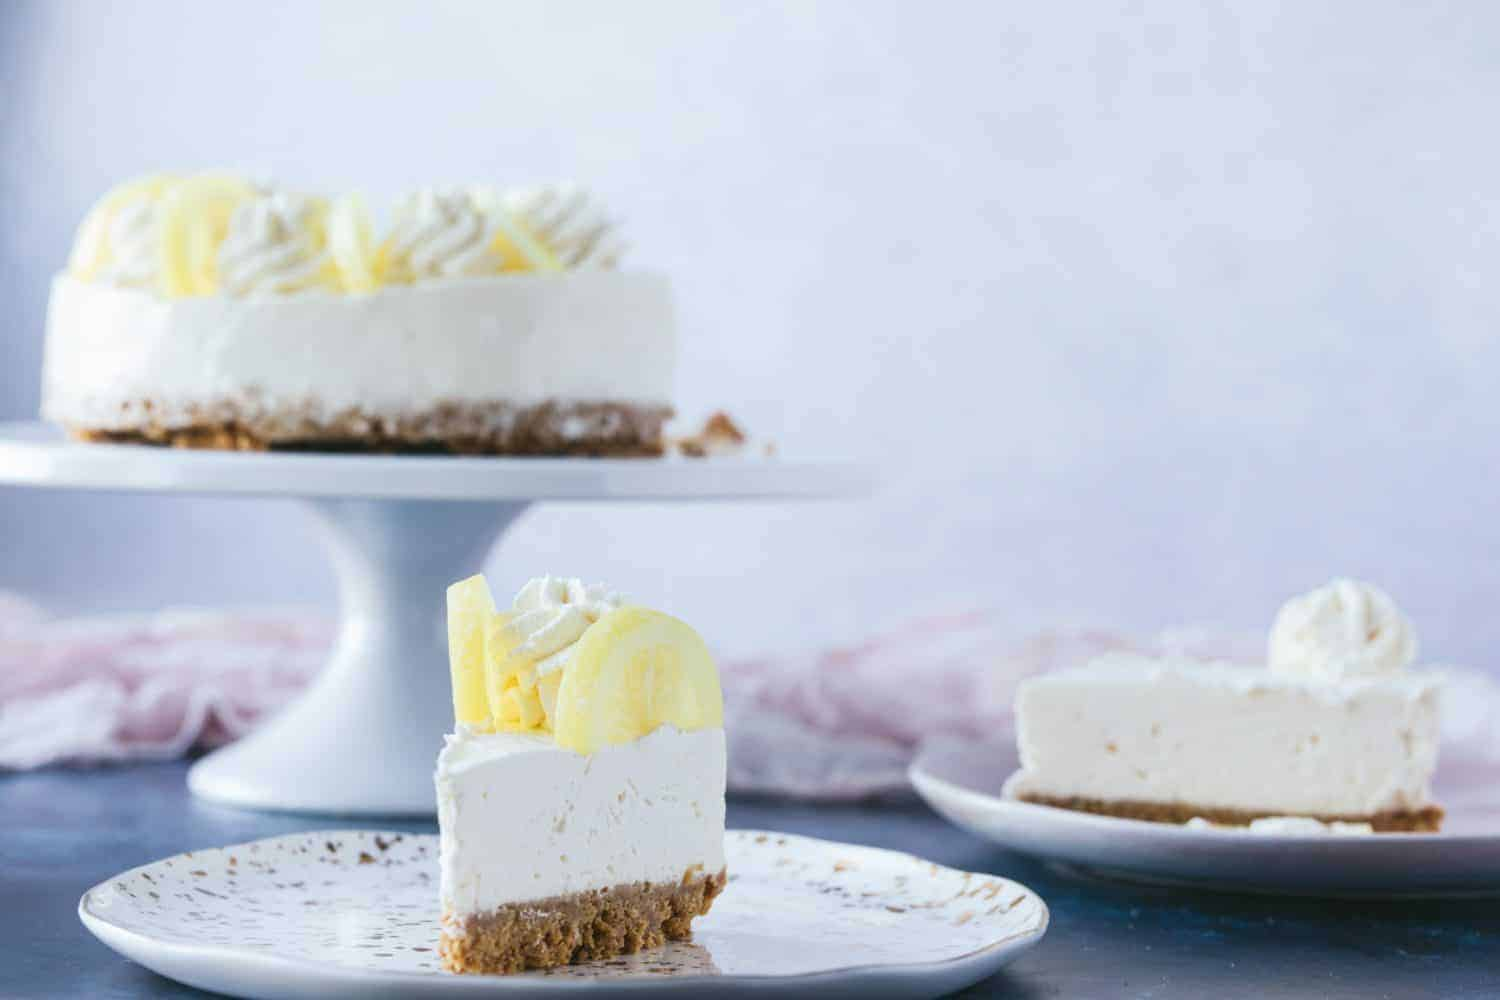 In the background is a cheesecake dessert on a white platter. In the foreground are two slices on small cake plates.